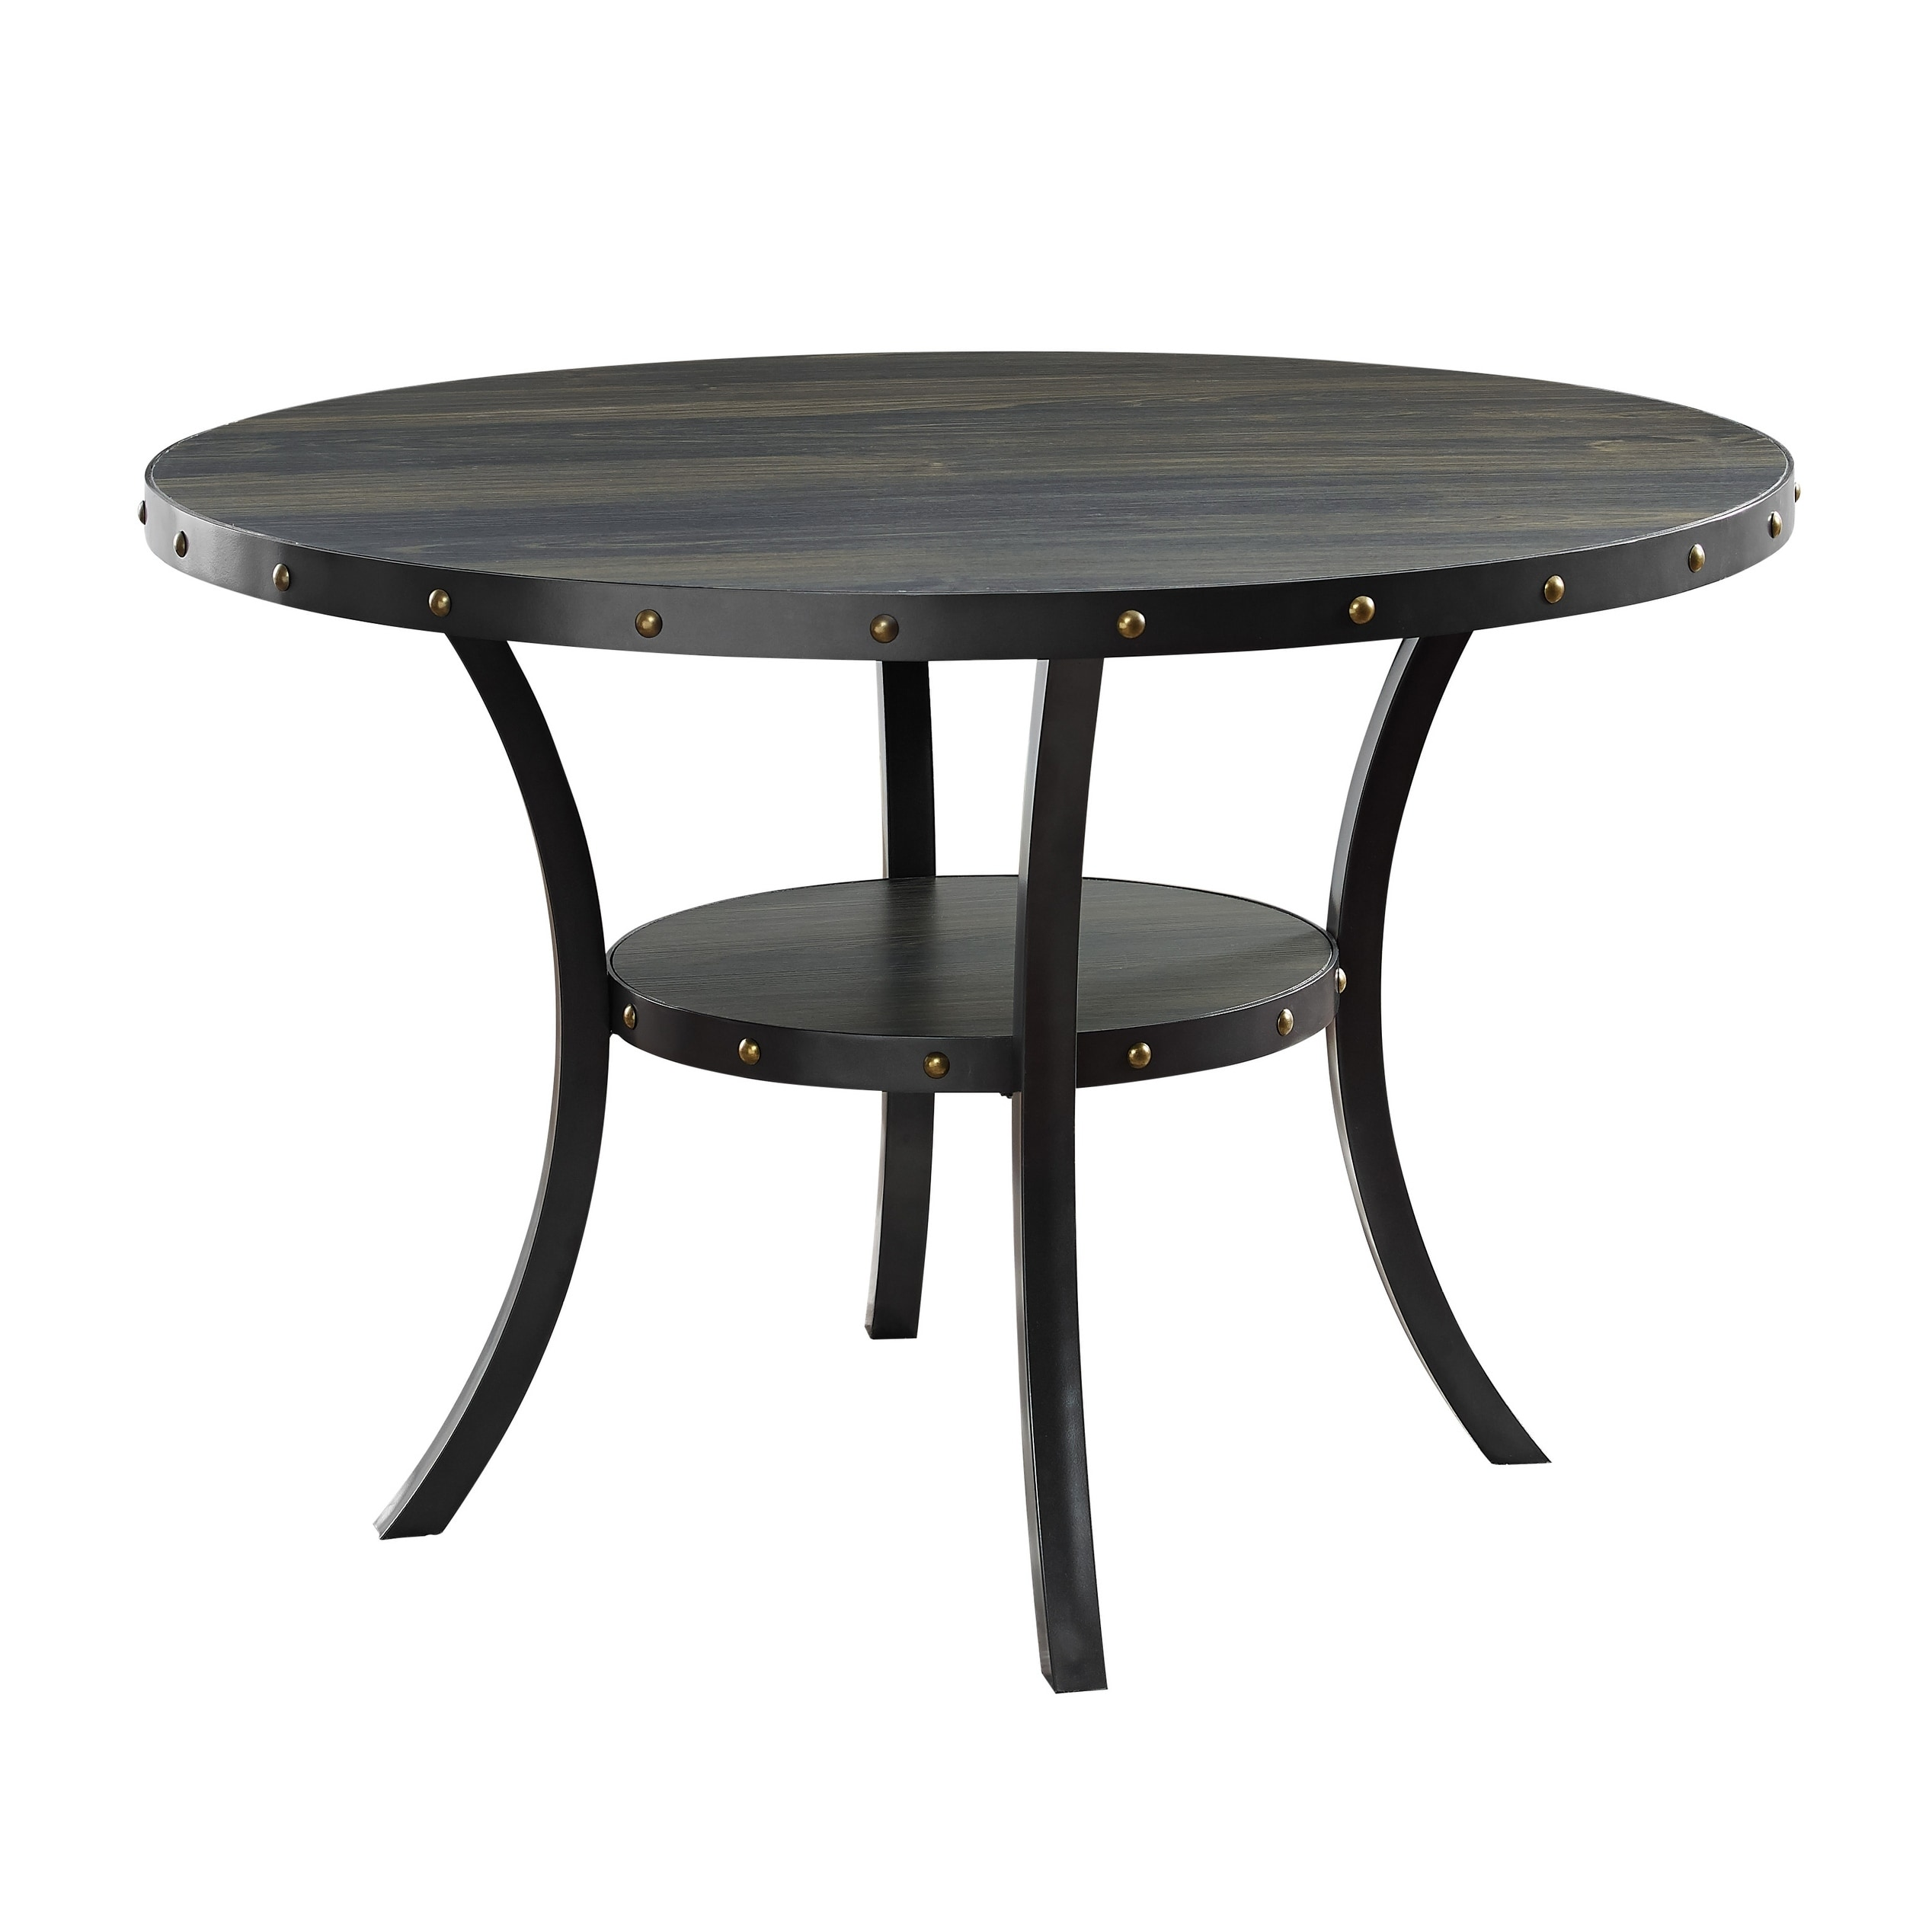 Shop Crispin Smoke 48 Inch Round Dining Table On Sale Free